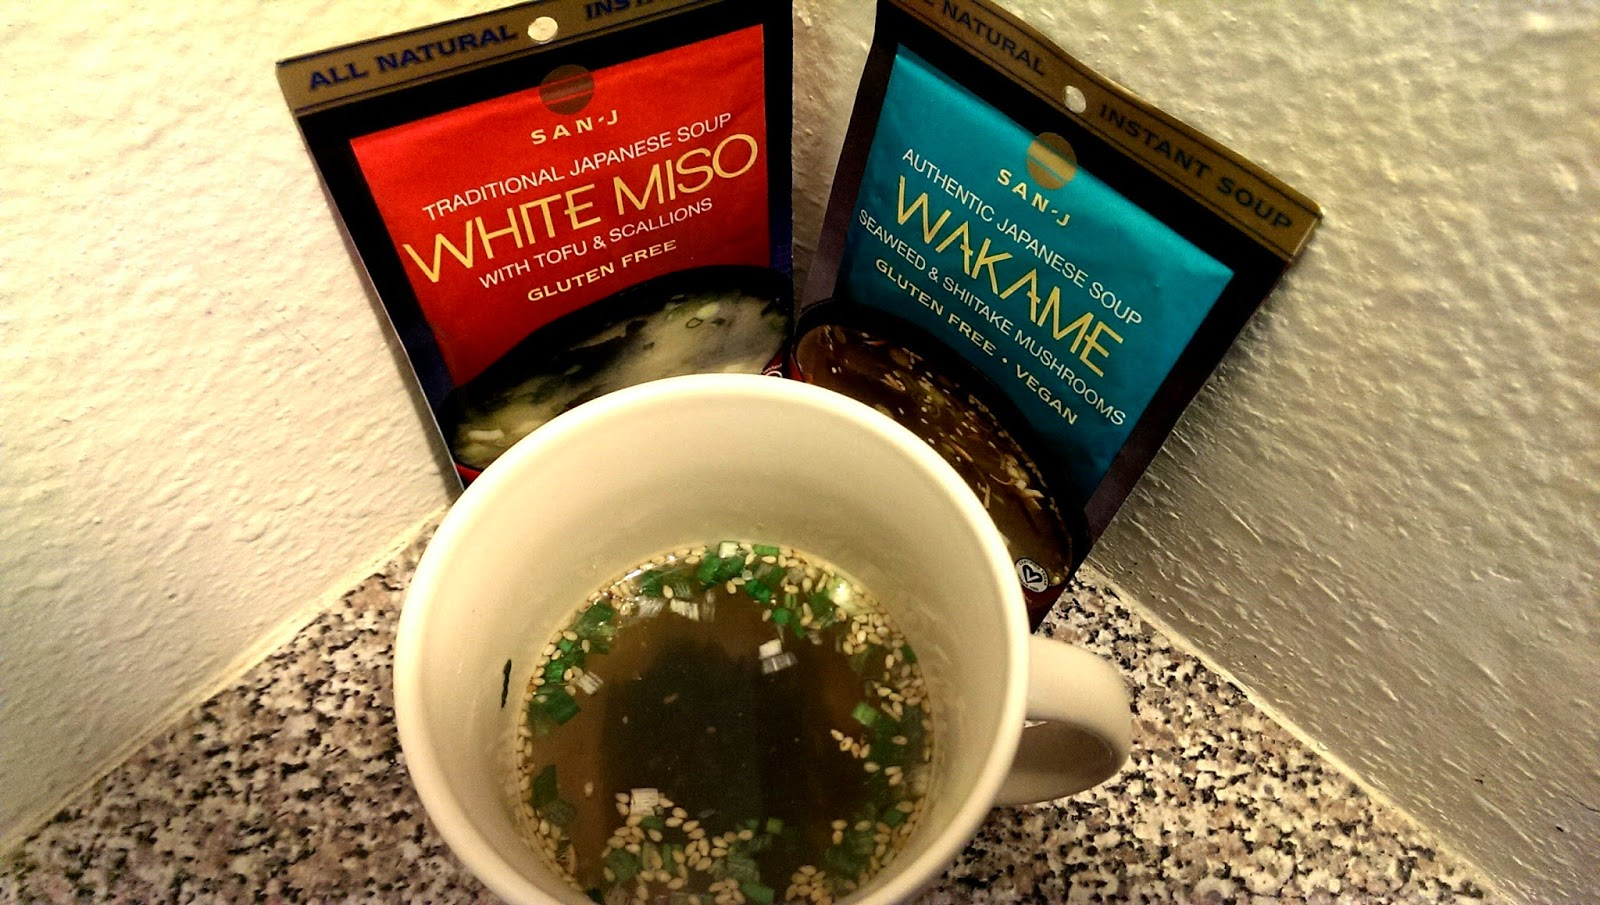 Miso+Soup San-J's New instant Miso and Wakame Soup Review - Japanese Instant Soup